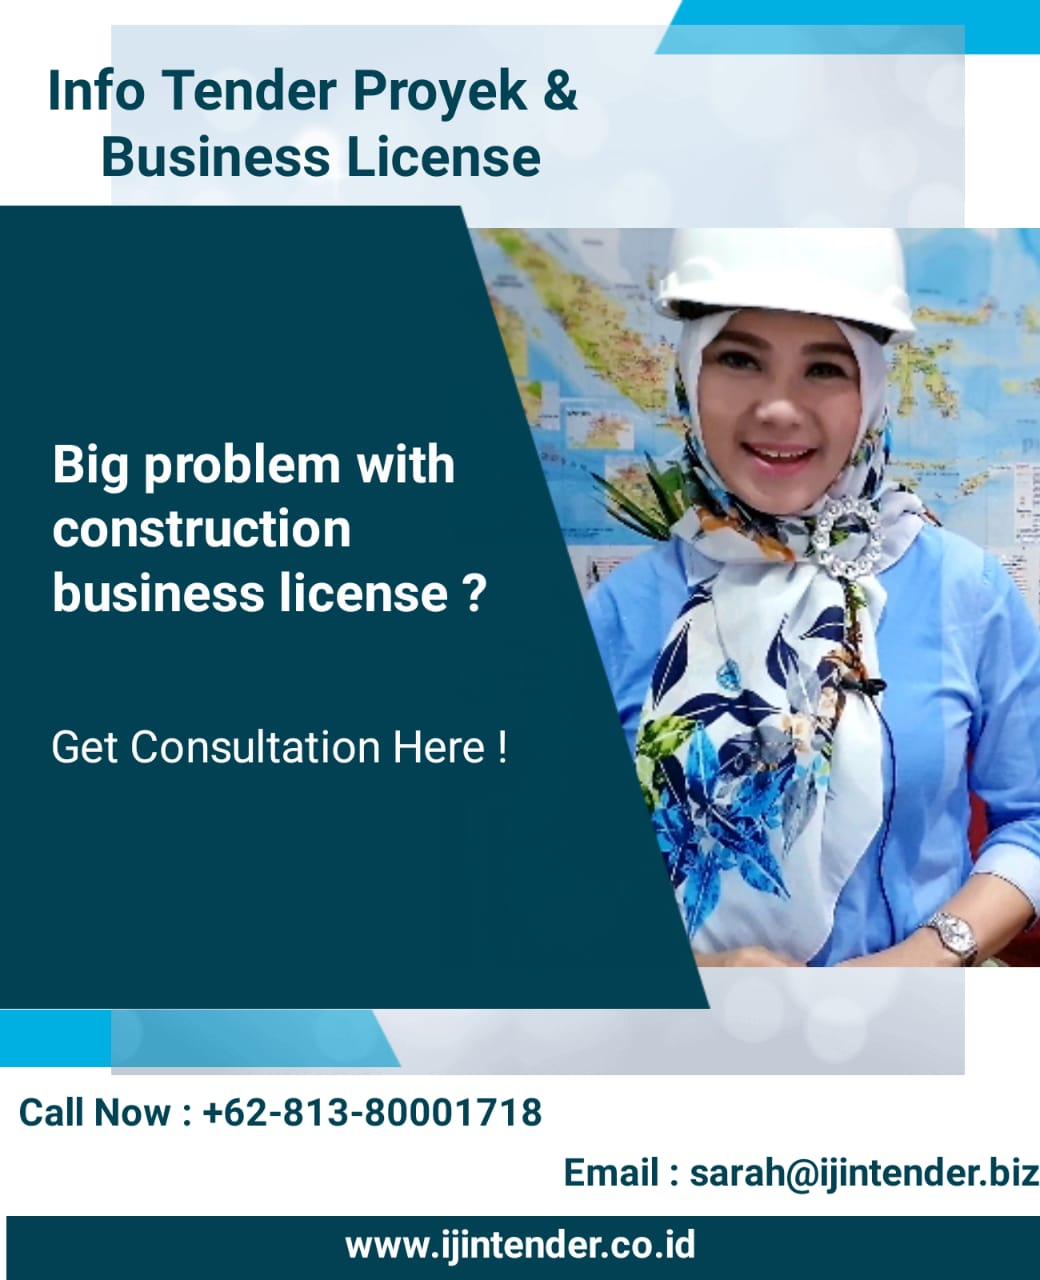 Company overview - How to Set Up Business In Indonesia